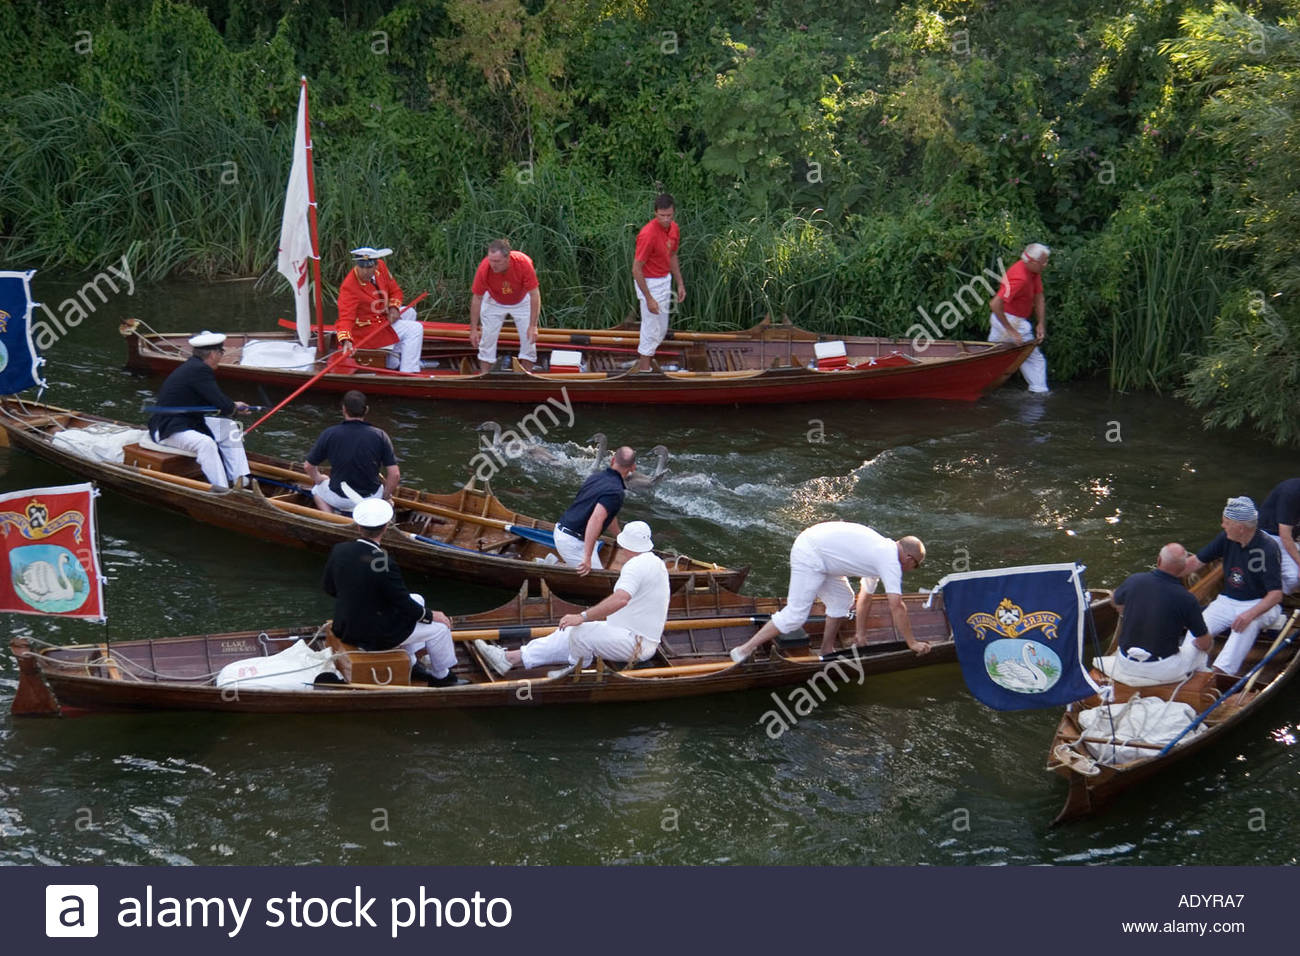 Annual Swan Upping event on the River Thames near Goring, UK - Stock Image